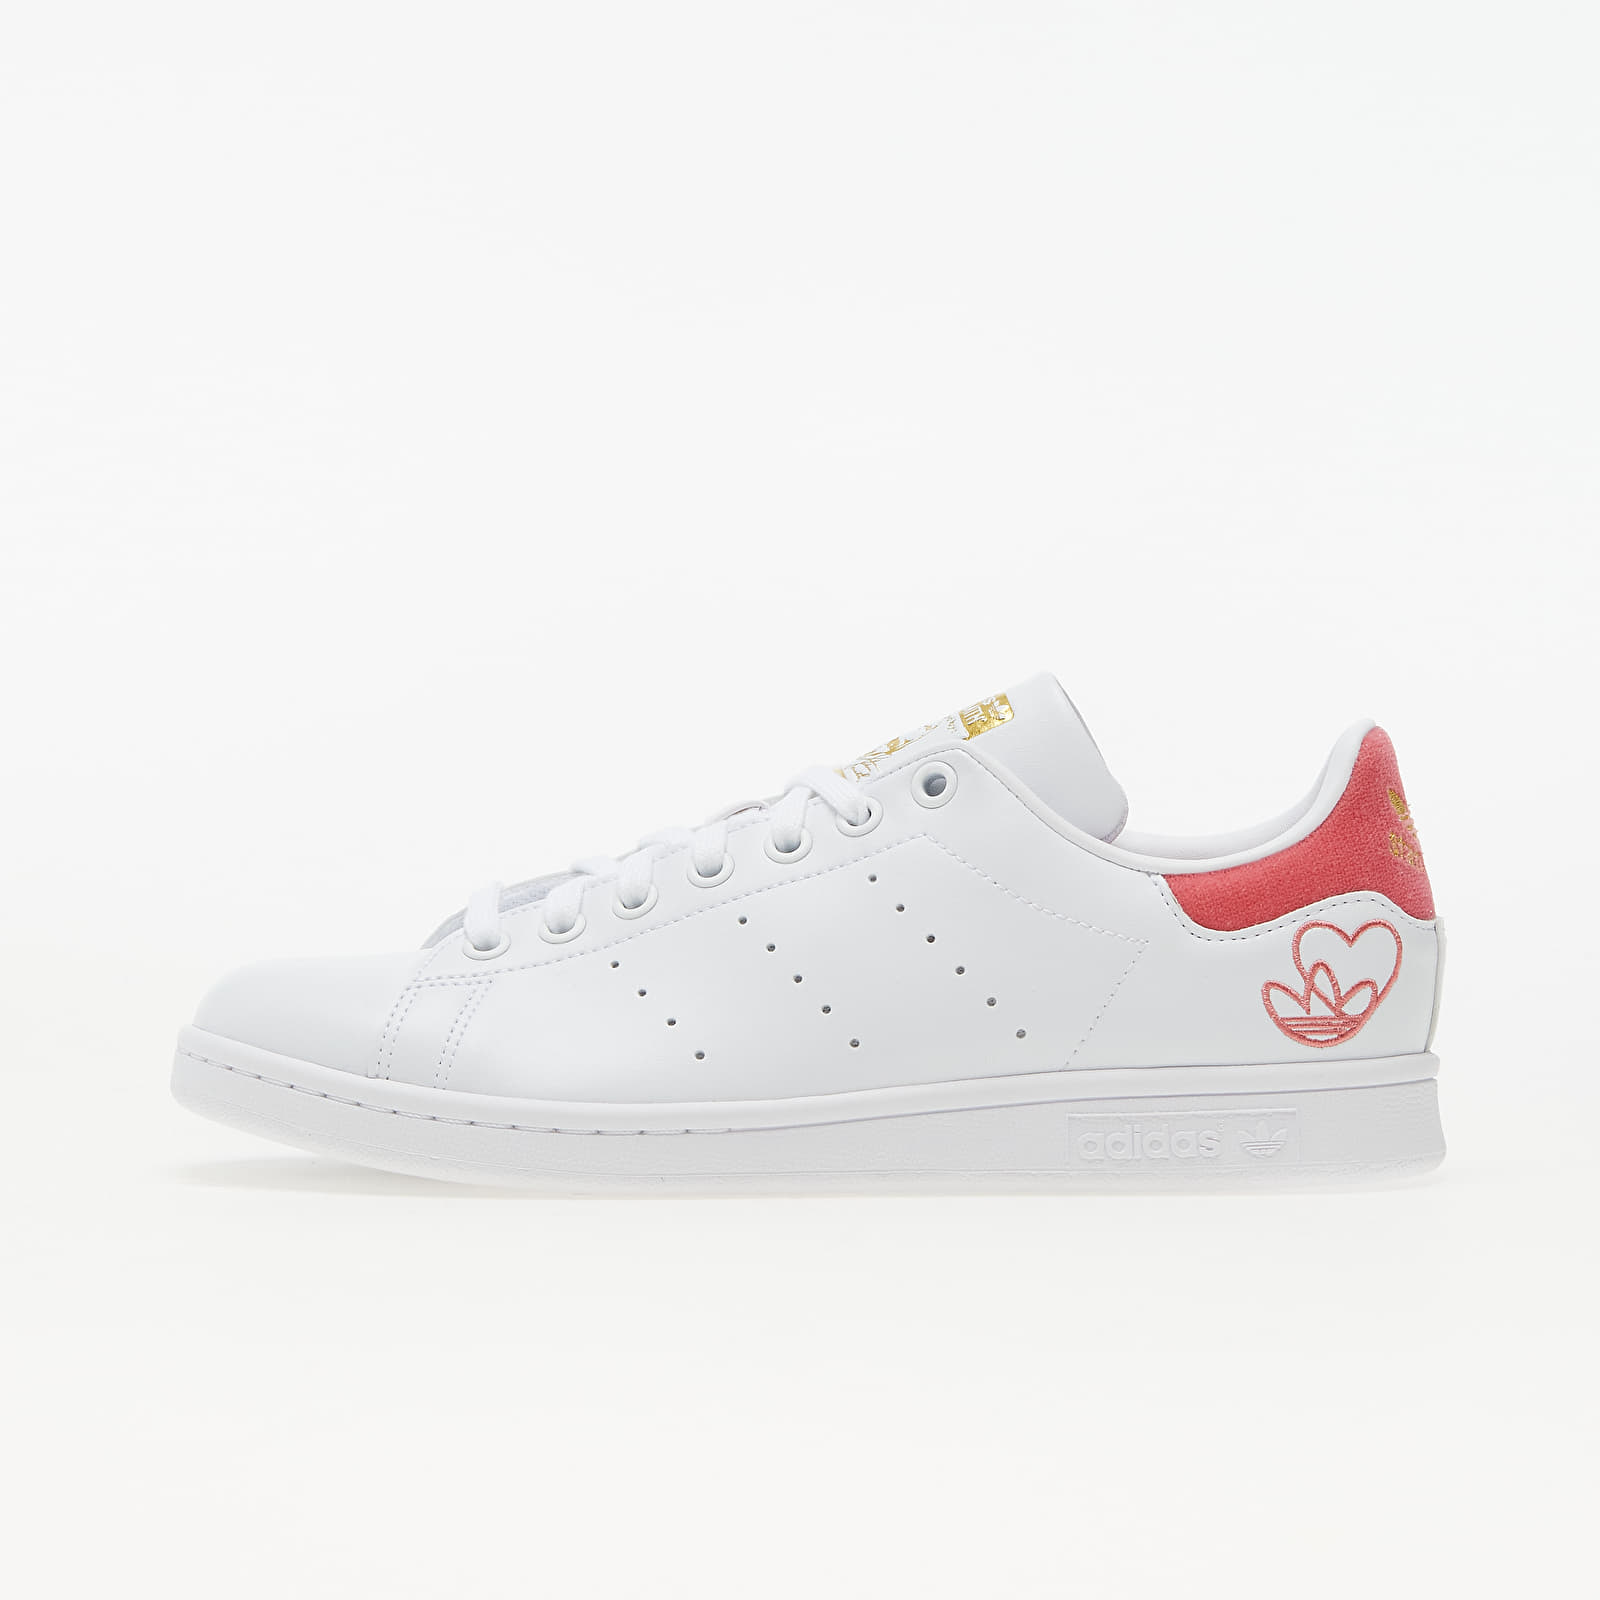 adidas Stan Smith W Ftw White/ Haze Rose/ Gold Metalic EUR 40